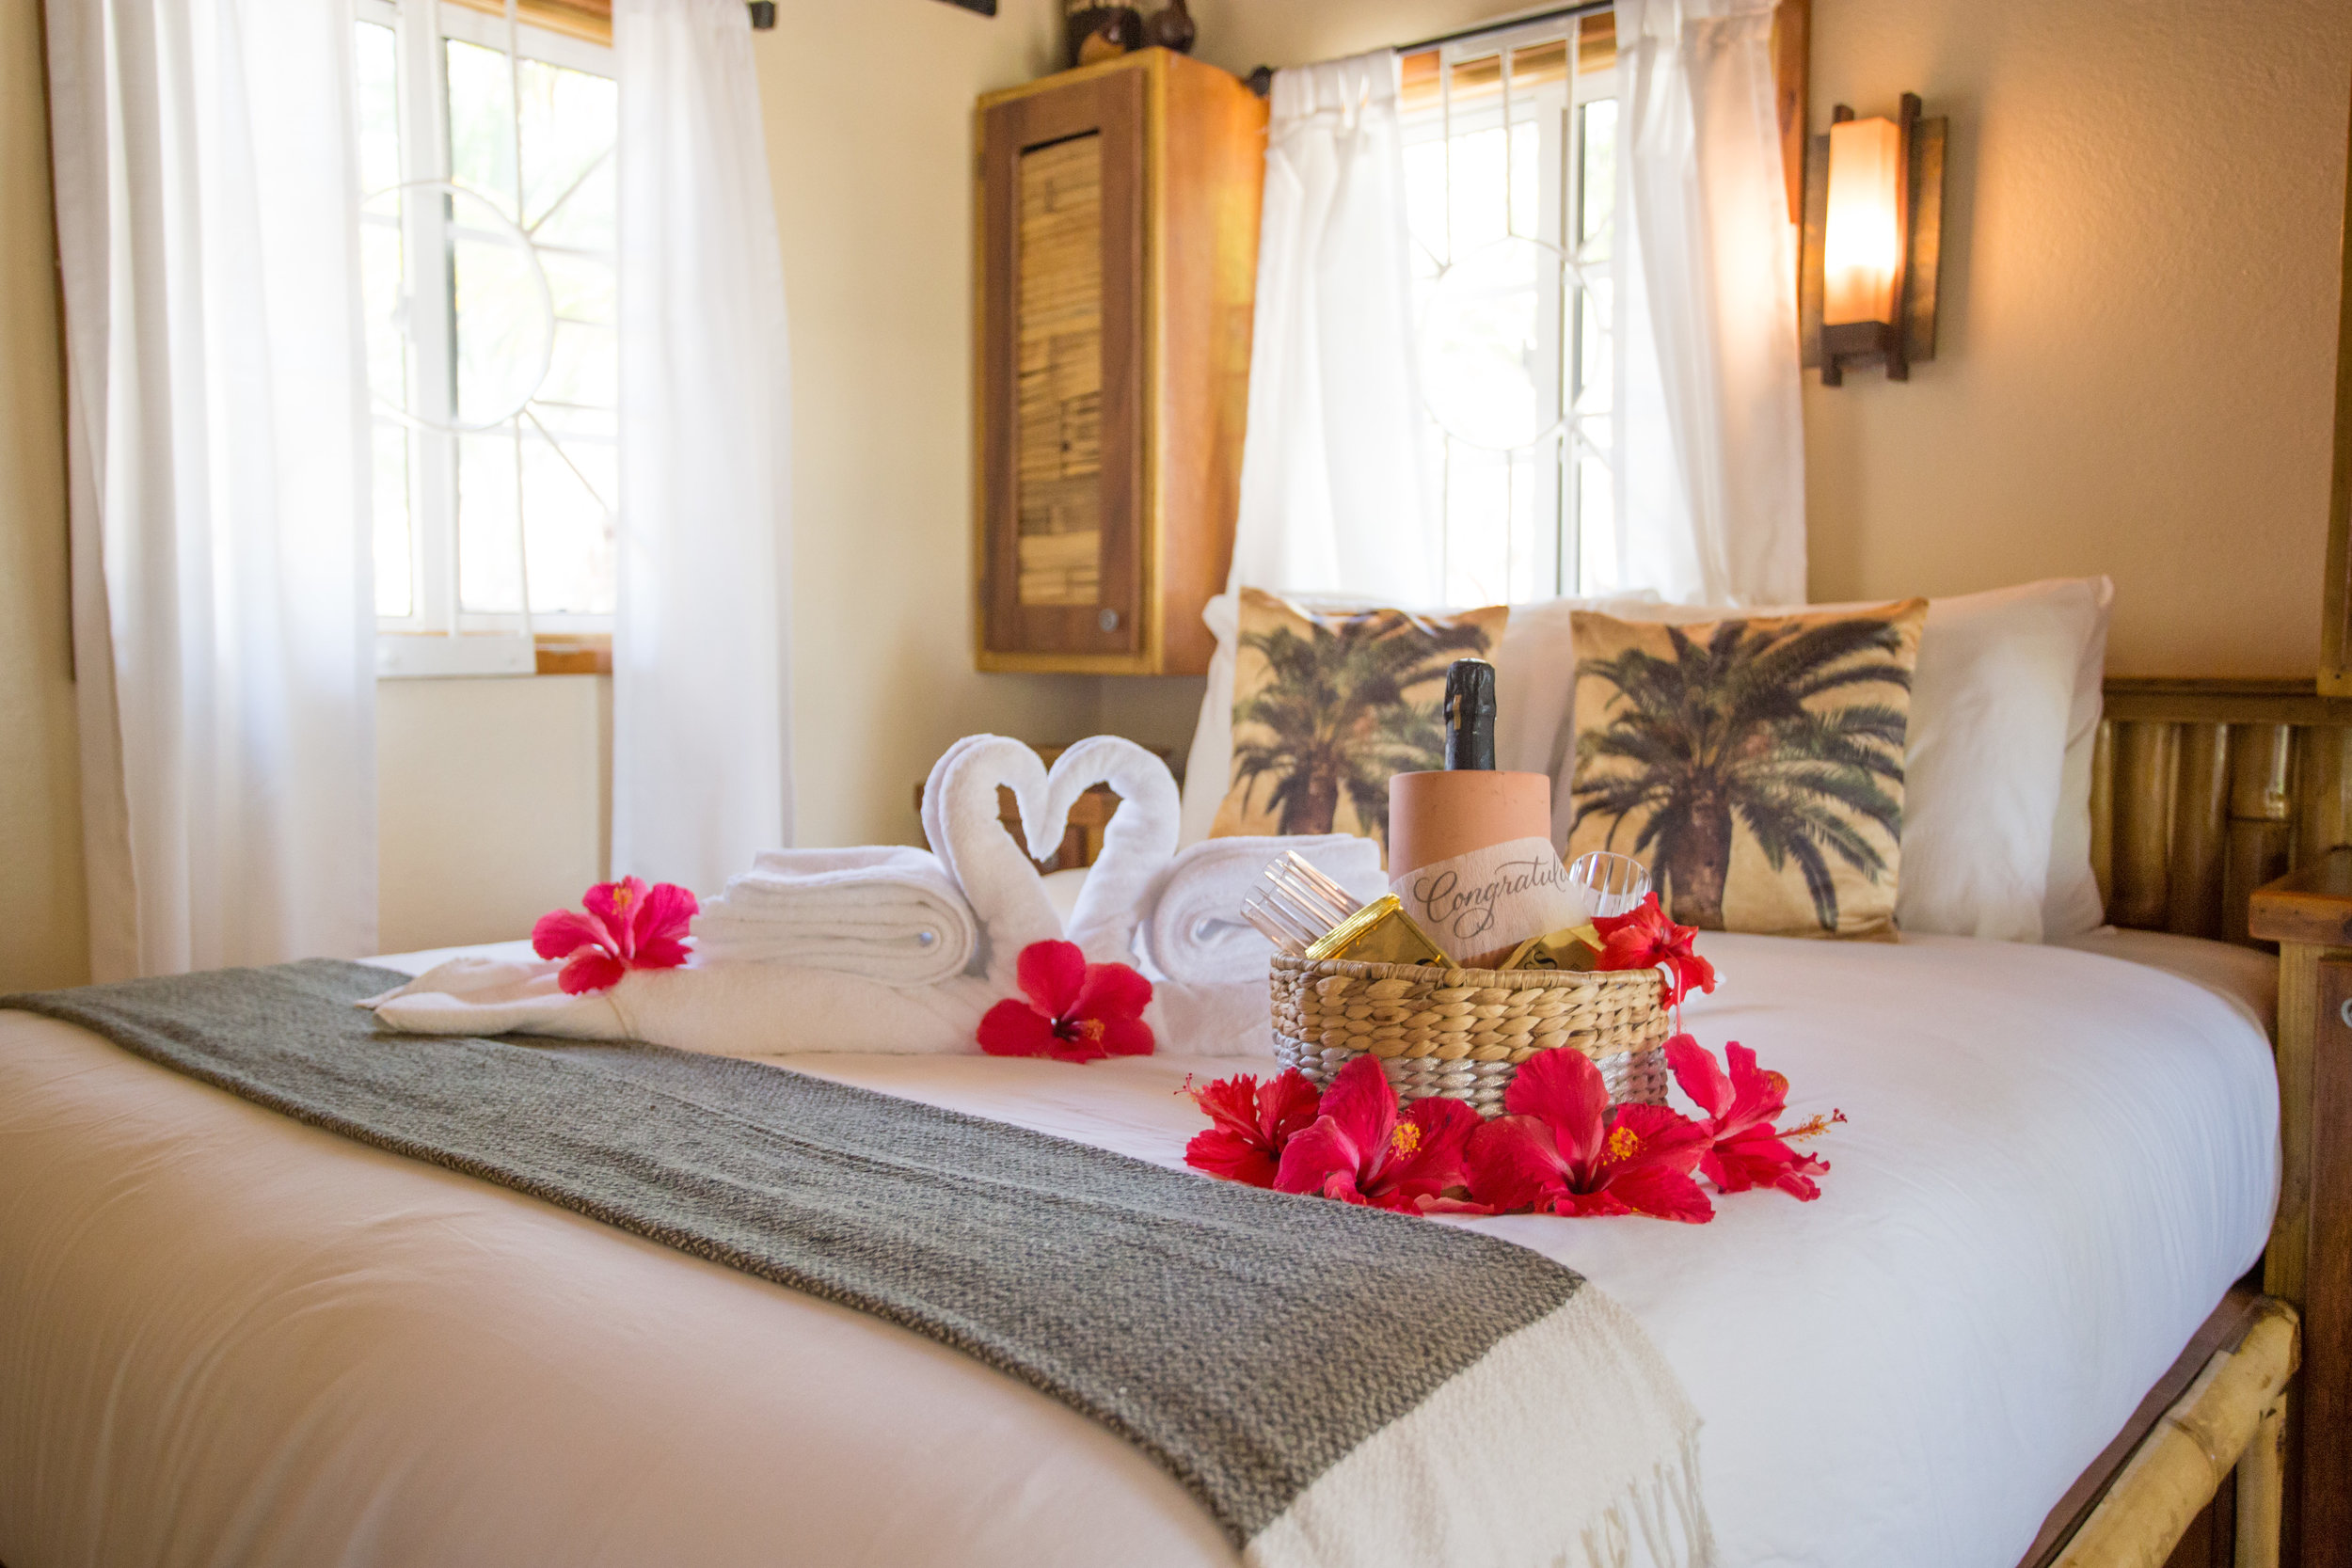 If you are here to celebrate a special occasion - let us know beforehand, and you can enter your suite to find this welcoming romance package! See the bottom of our amenities page for more information.